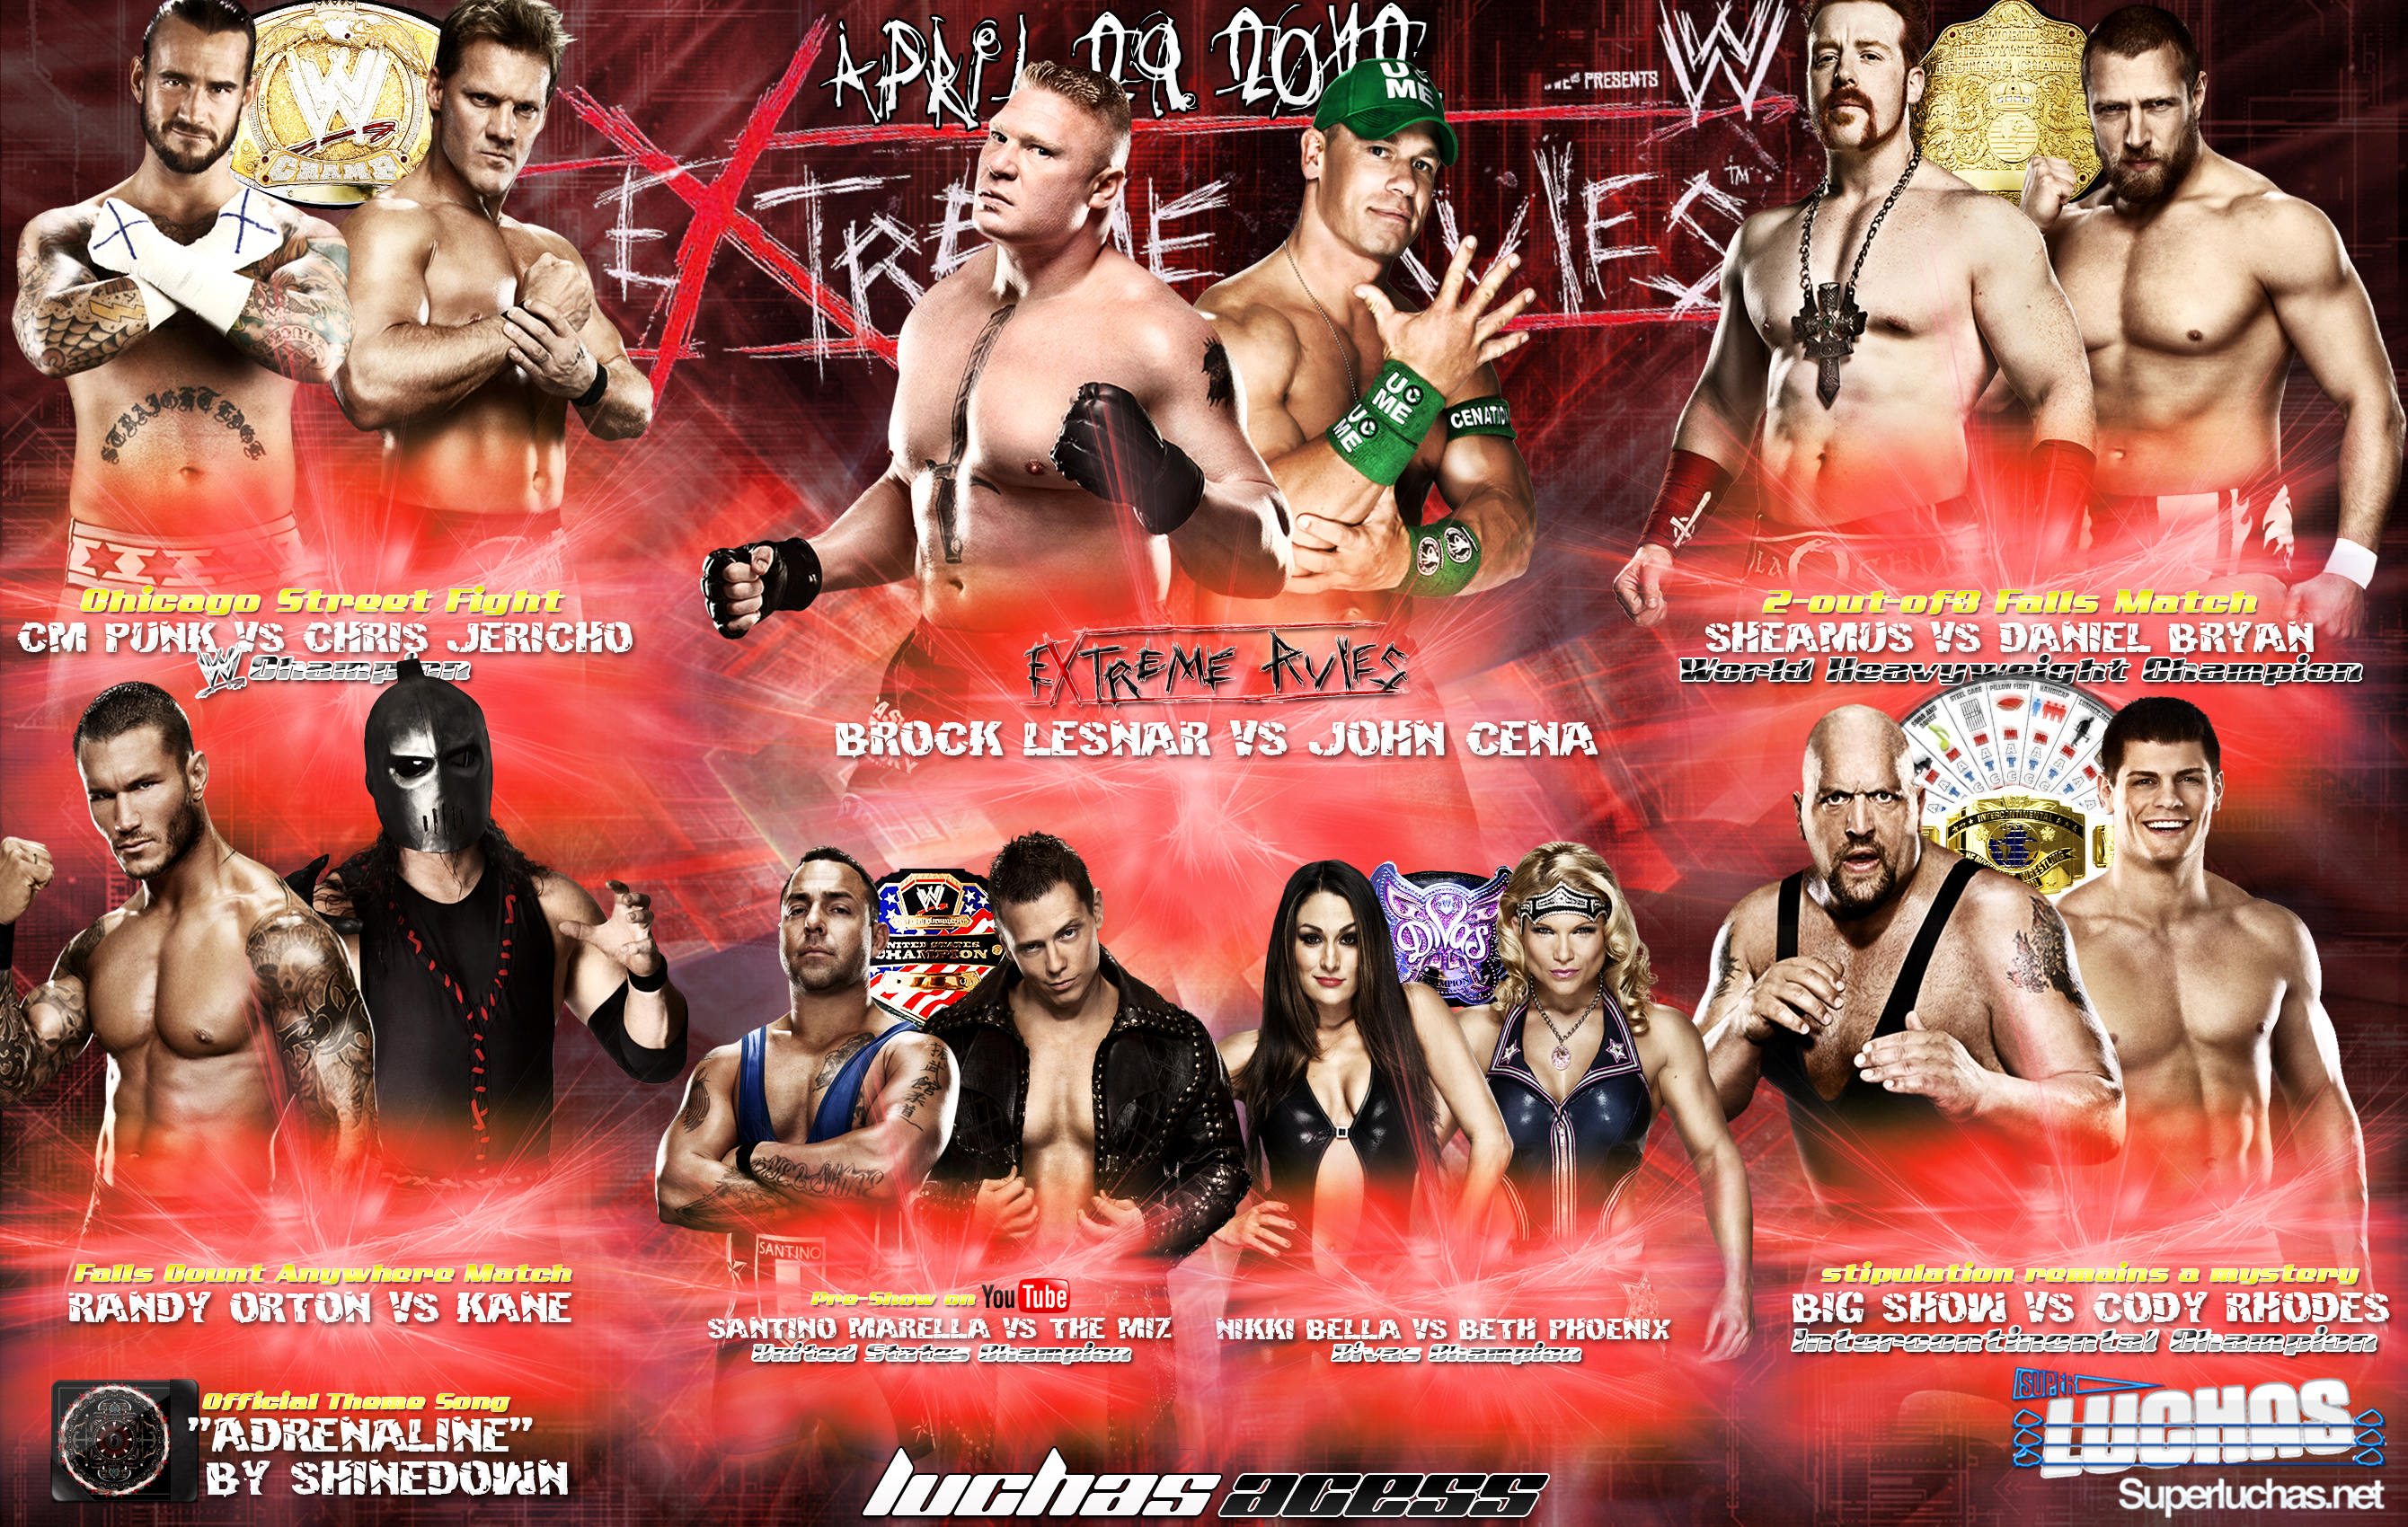 Wallpaper: Cartel del PPV WWE Extreme Rules 2012 / By: asasj23